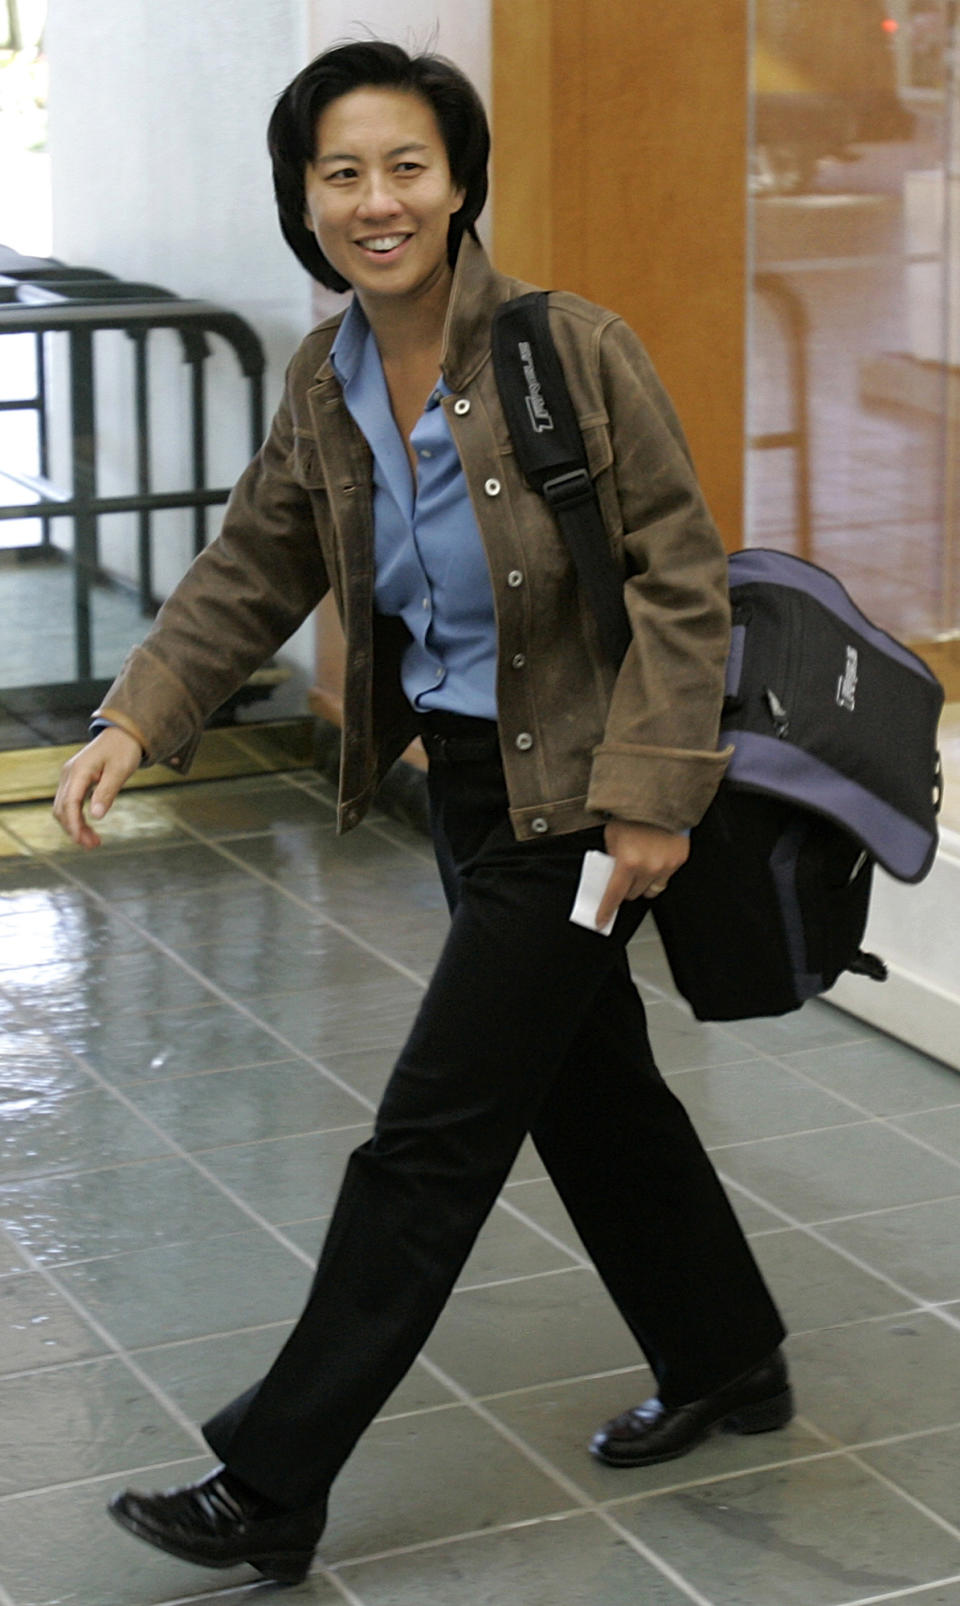 ** FILE ** Los Angeles Dodgers assistant general manager Kim Ng walks through the hotel lobby during the first day of Major League Baseball annual general managers meetings in Orlando, Fla., in this Nov. 5, 2007 file photo. (AP Photo/John Raoux, file)